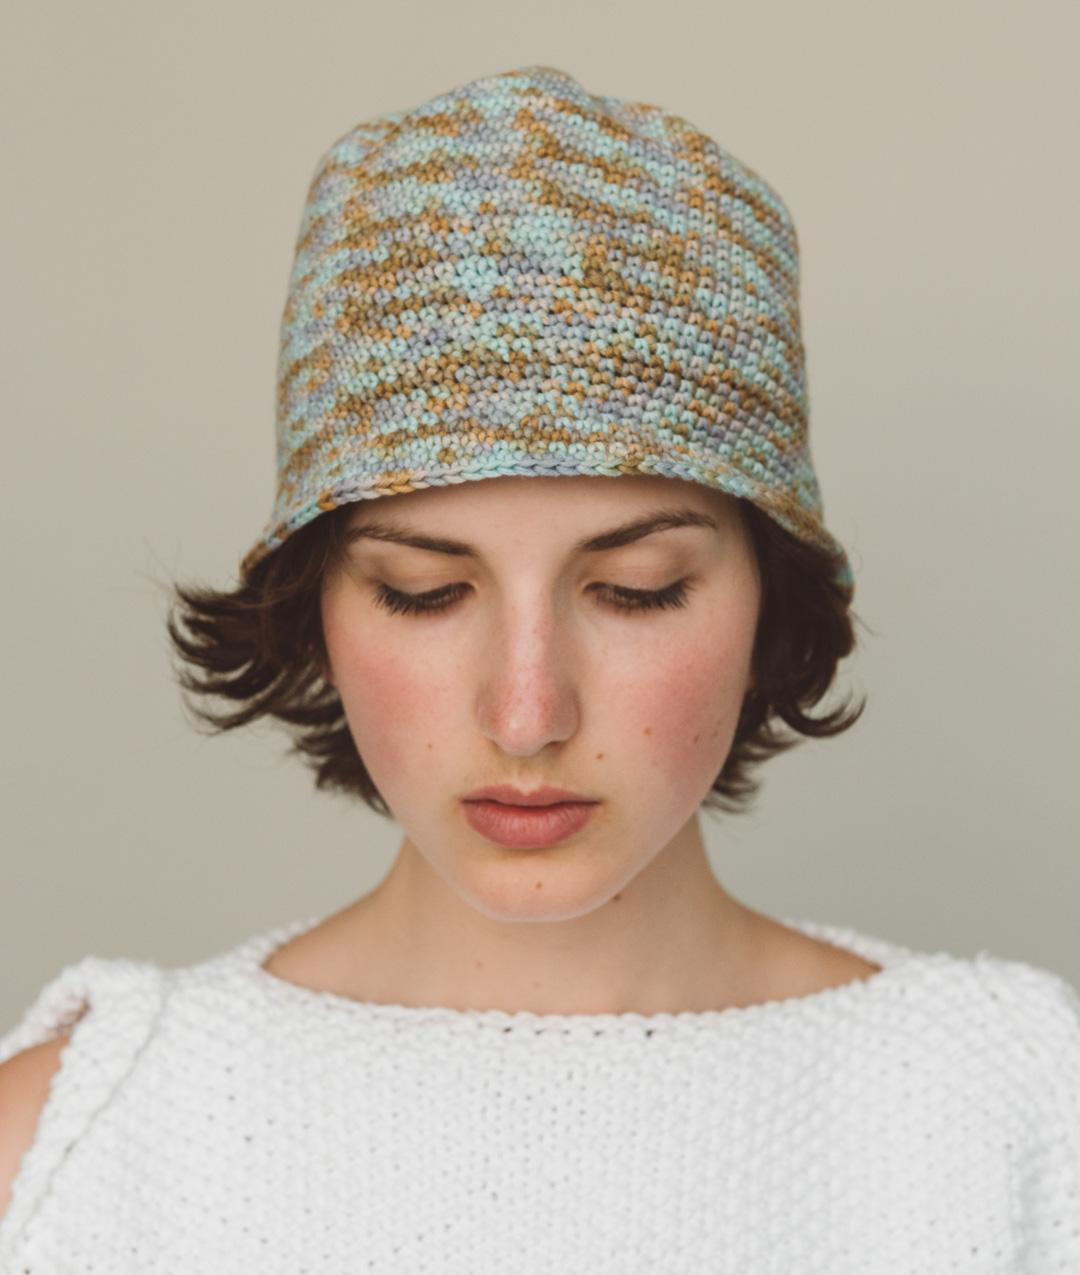 Hats and Beanies - Cotton - La Cloche - 1